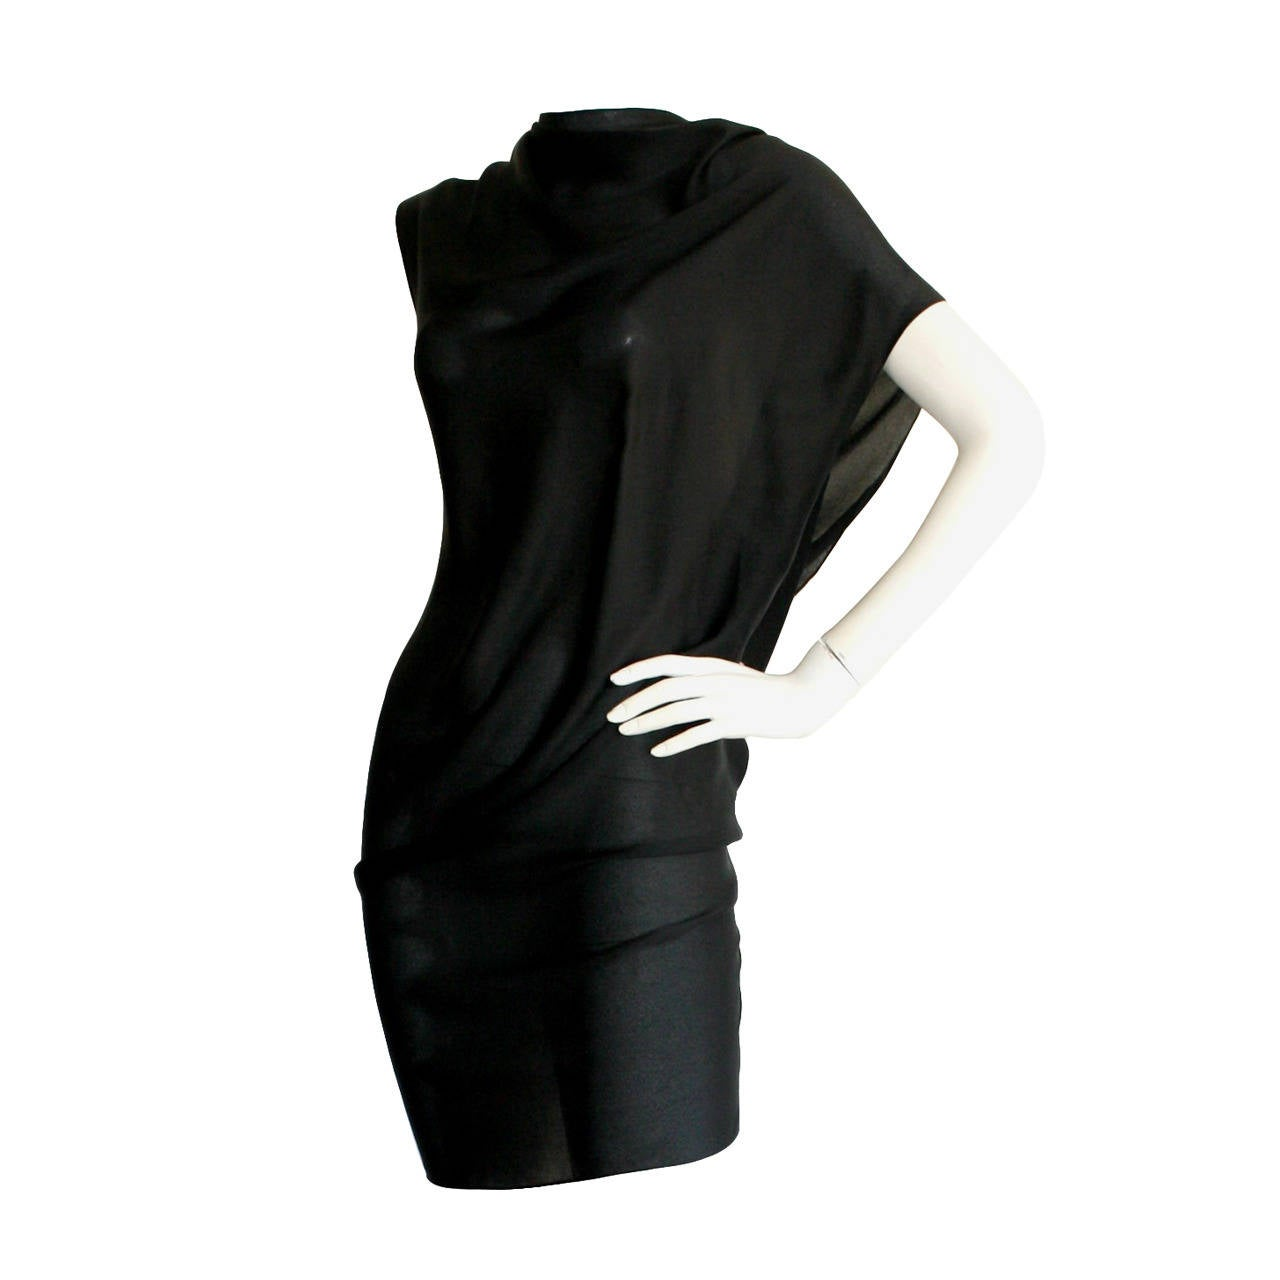 "Beautiful Alexander McQueen Black Dress Pre-Death from "" His "" Last Collection"